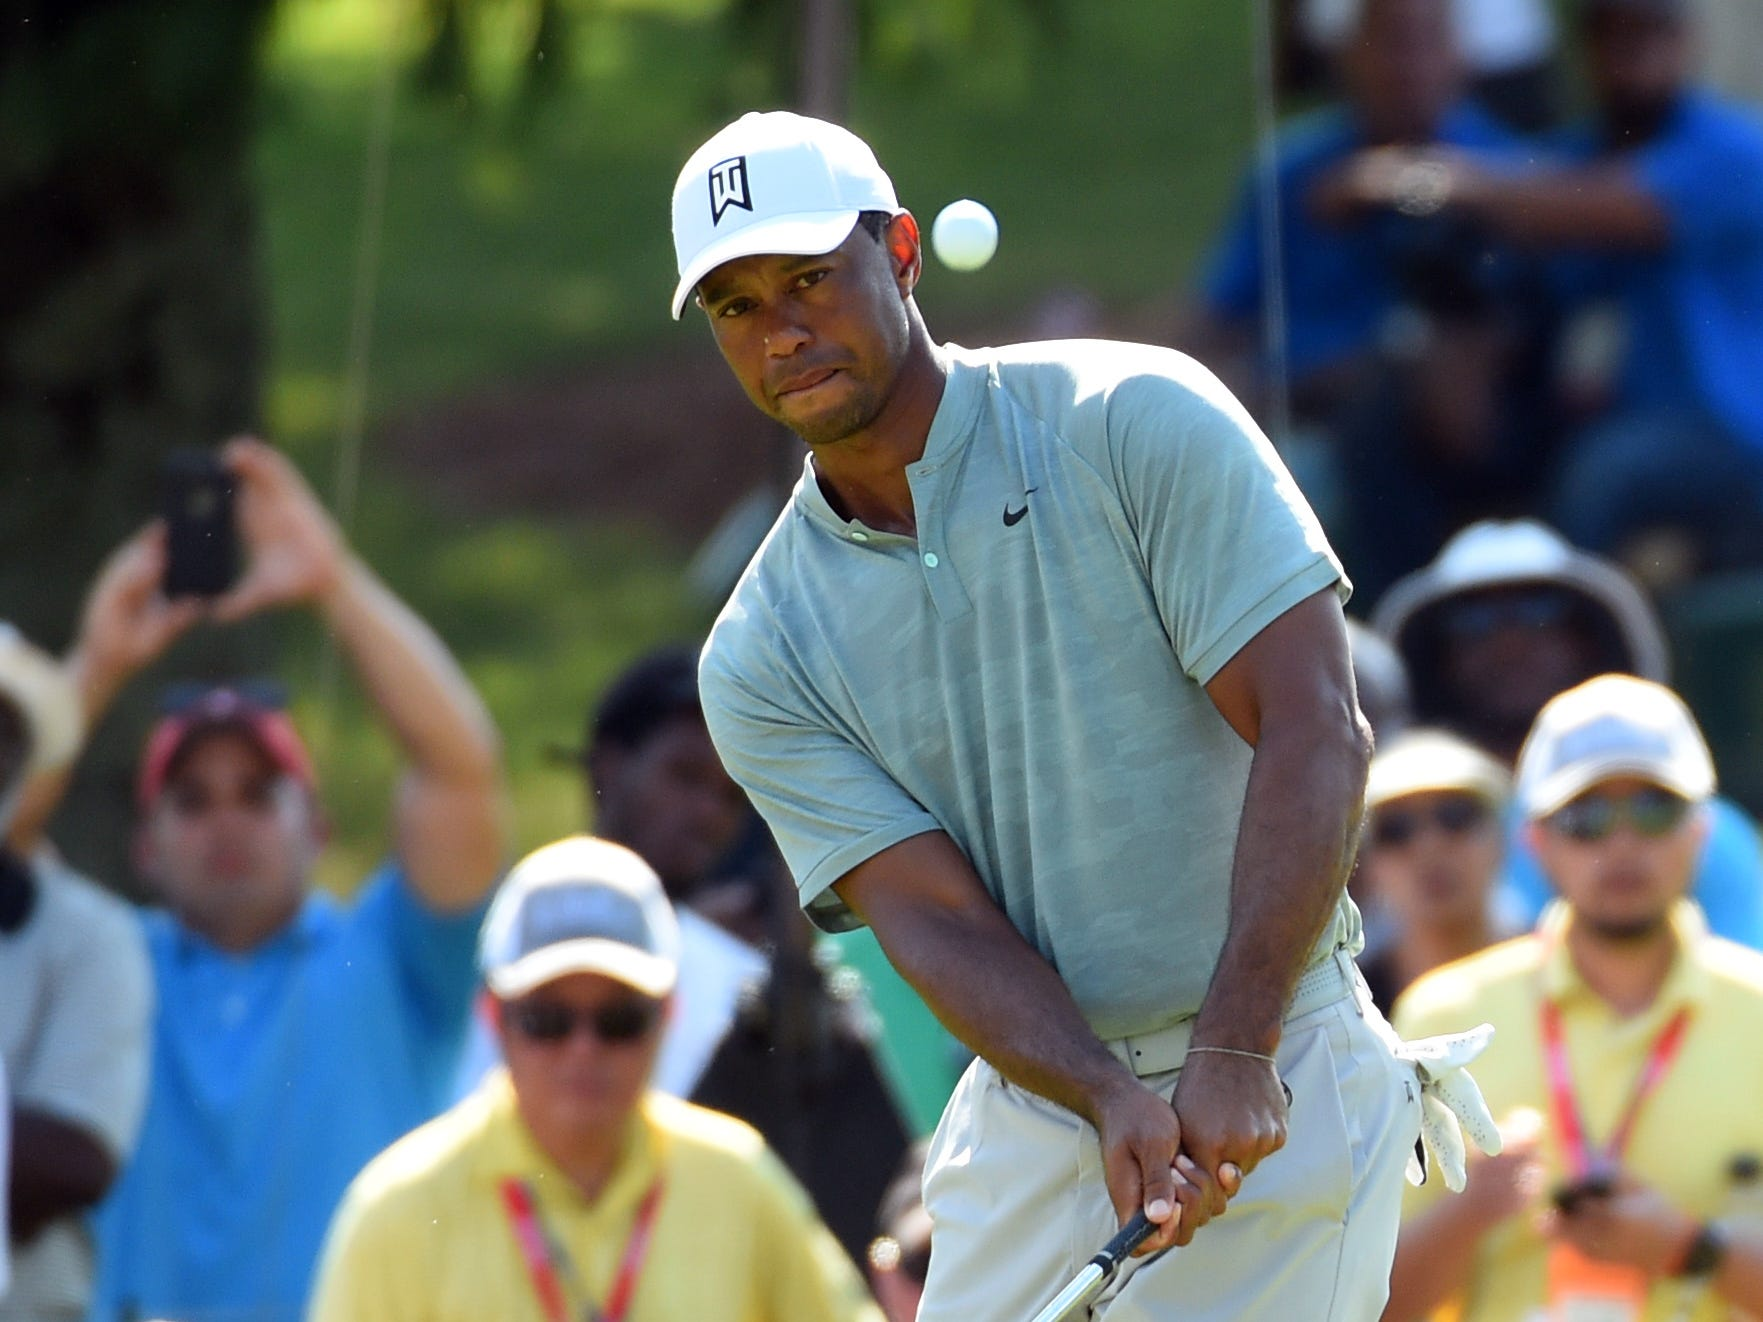 Tiger Woods chips on the 11th green during the second round of the Tour Championship golf tournament at East Lake Golf Club.